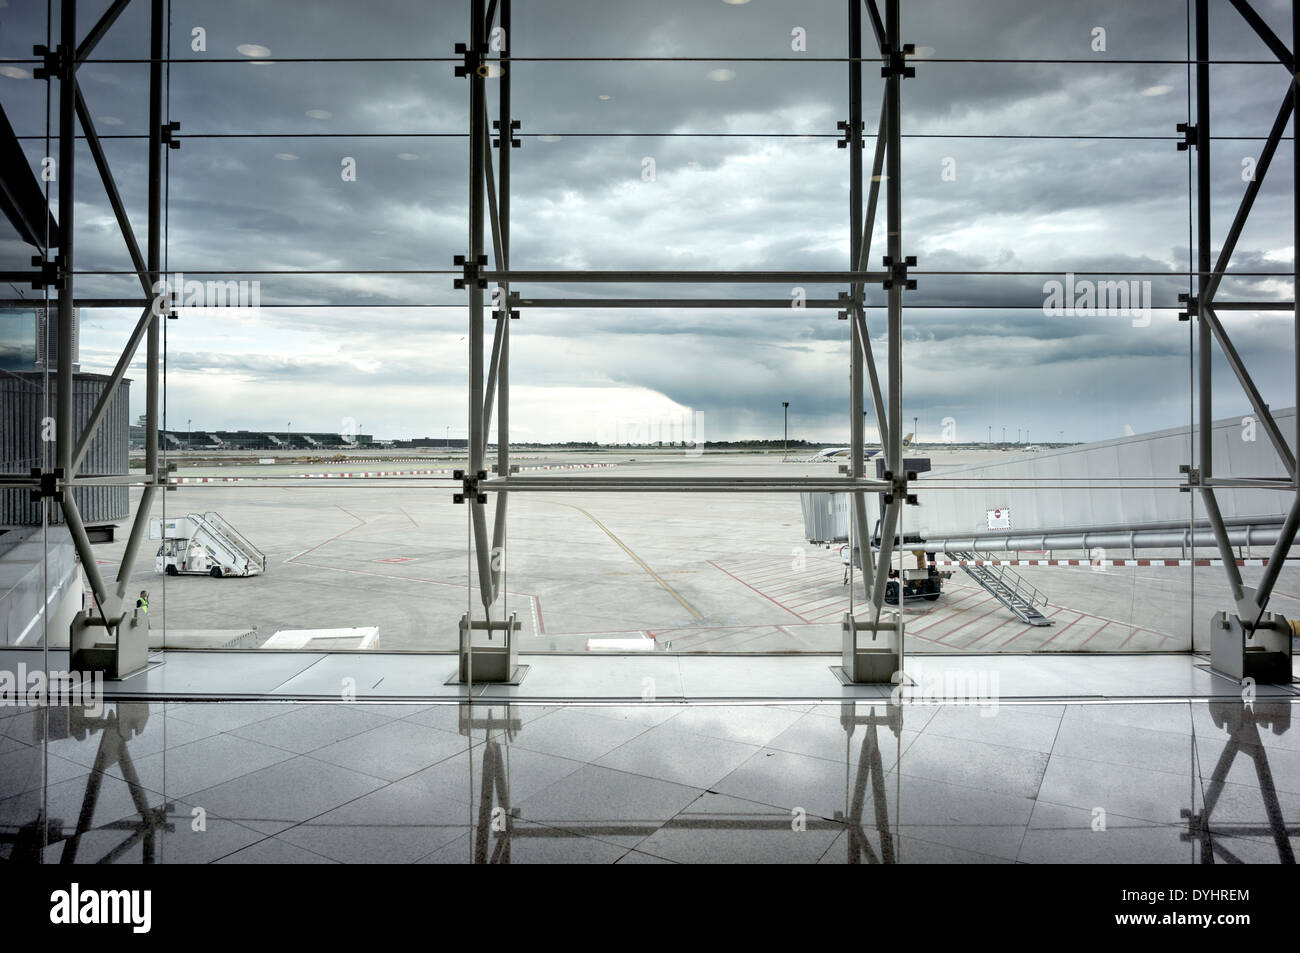 View from the pre-boarding area of El Prat Airport in Barcelona Spain. - Stock Image